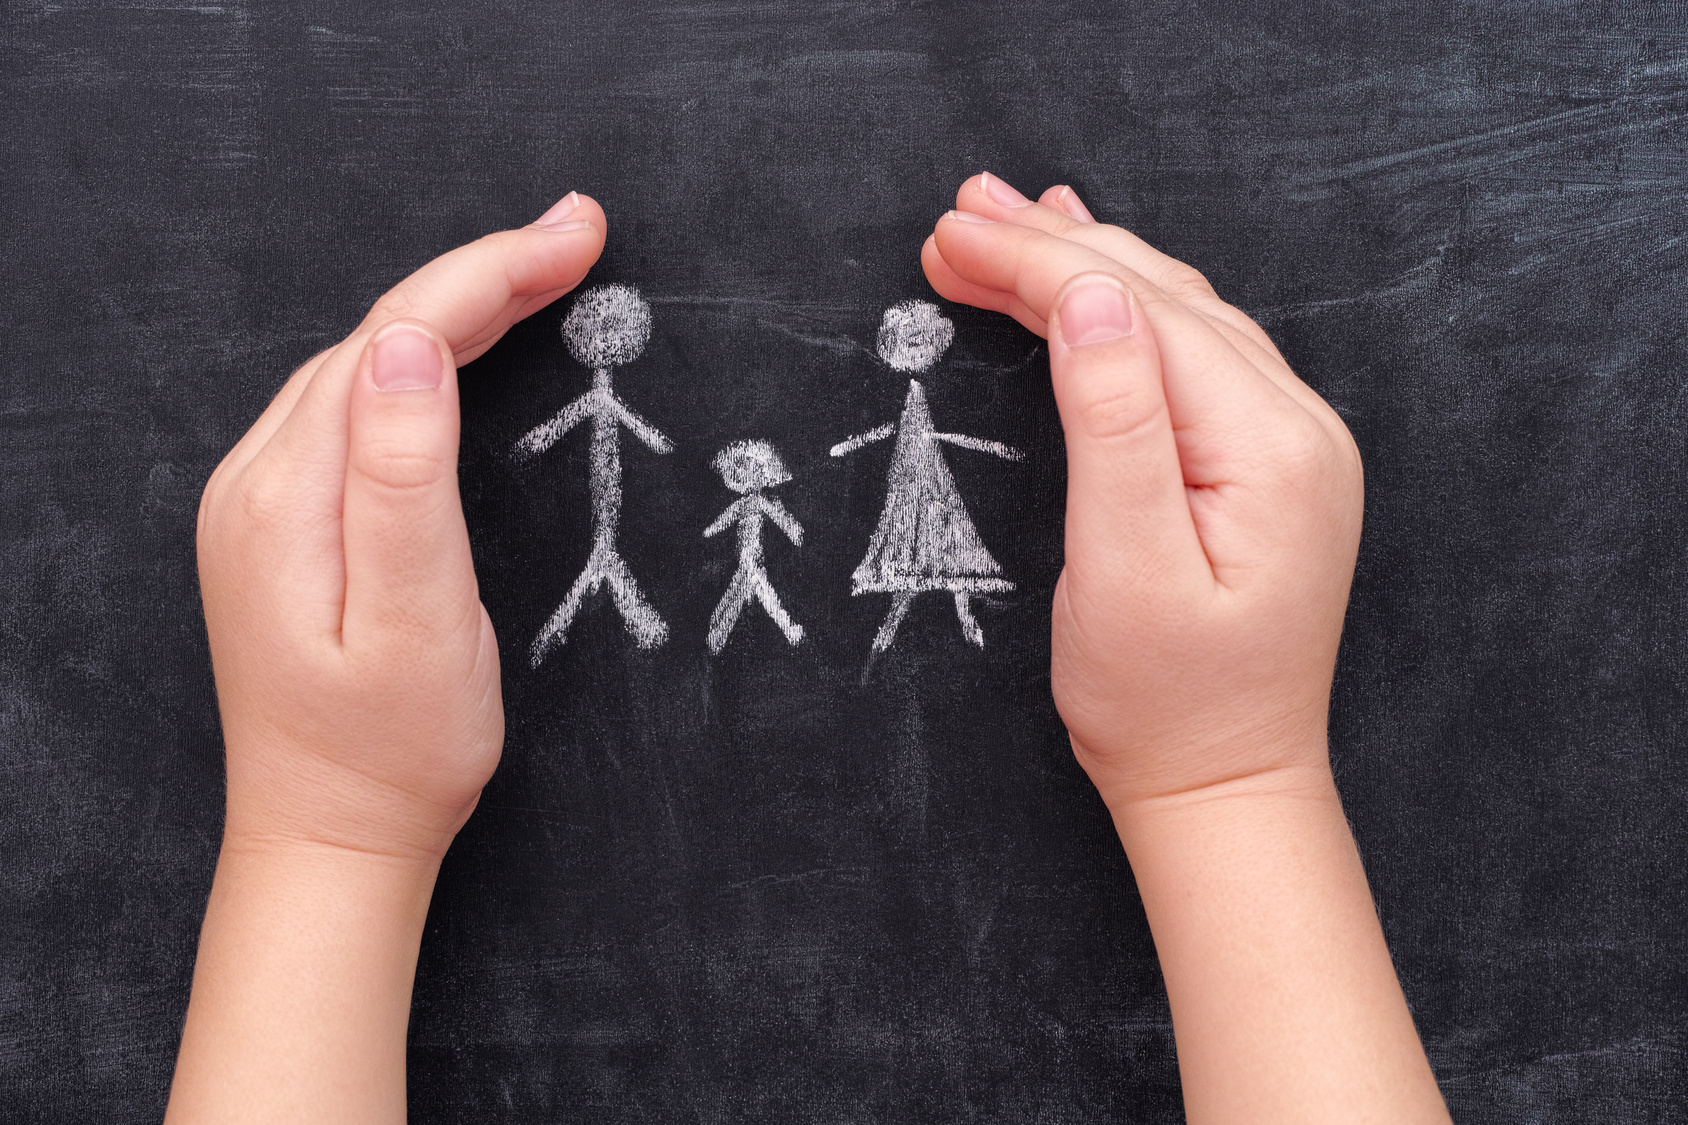 Child hands protecting family drawn on chalkboard. Family in hands.